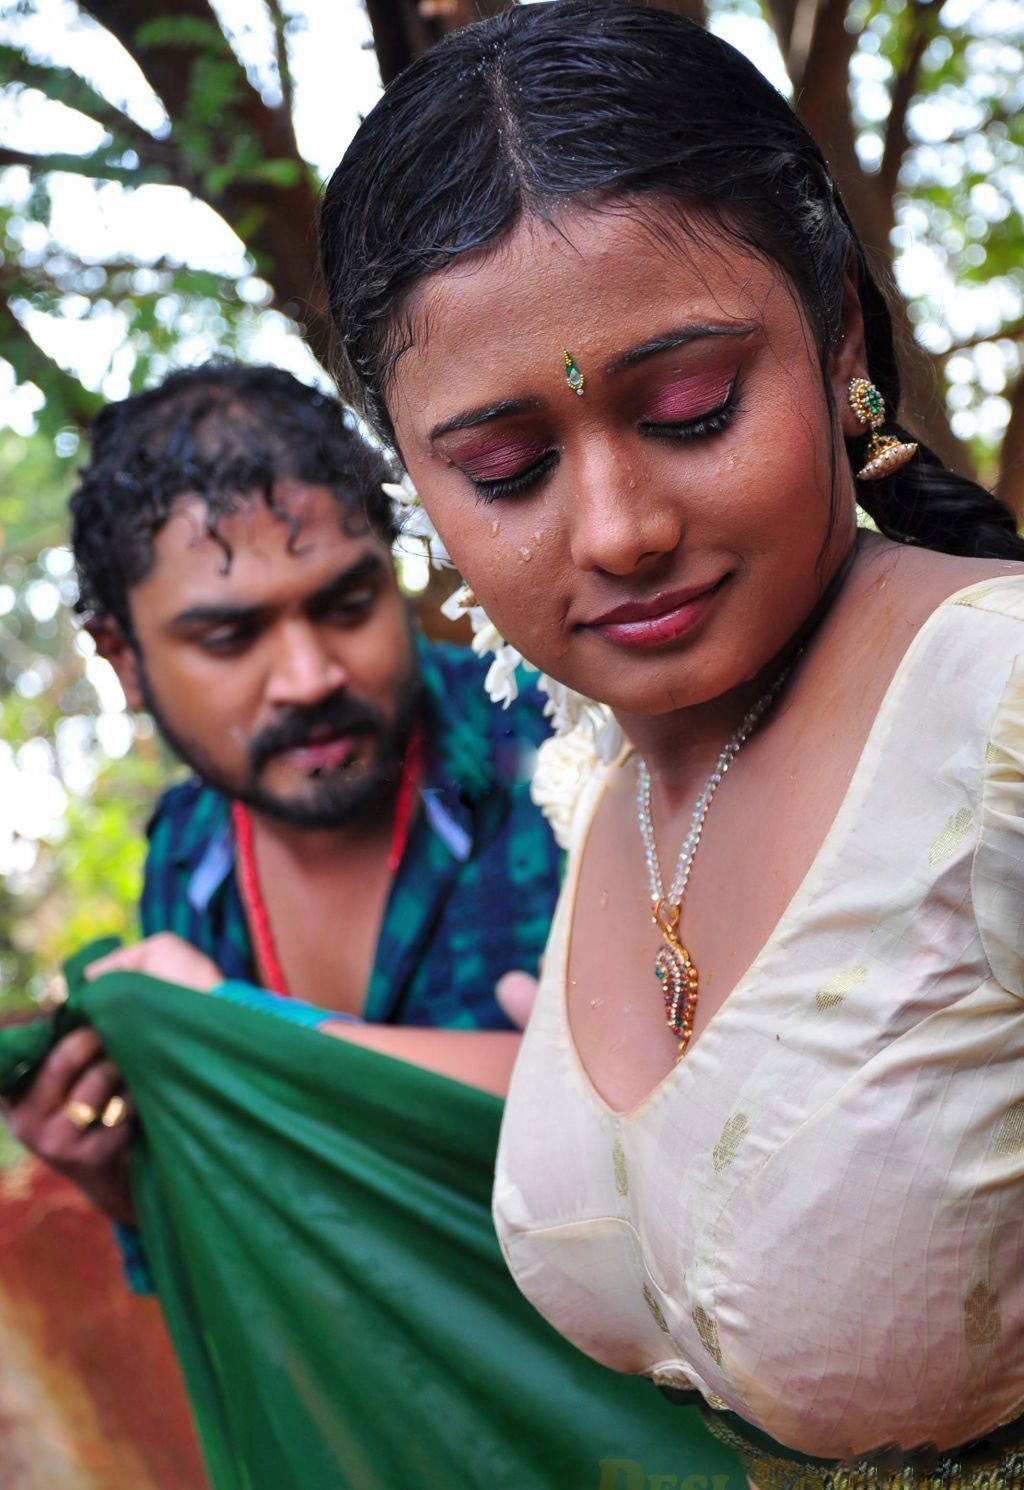 Spicy Hot Masala Romantic Scenes From Hot Movies - Hm -9258